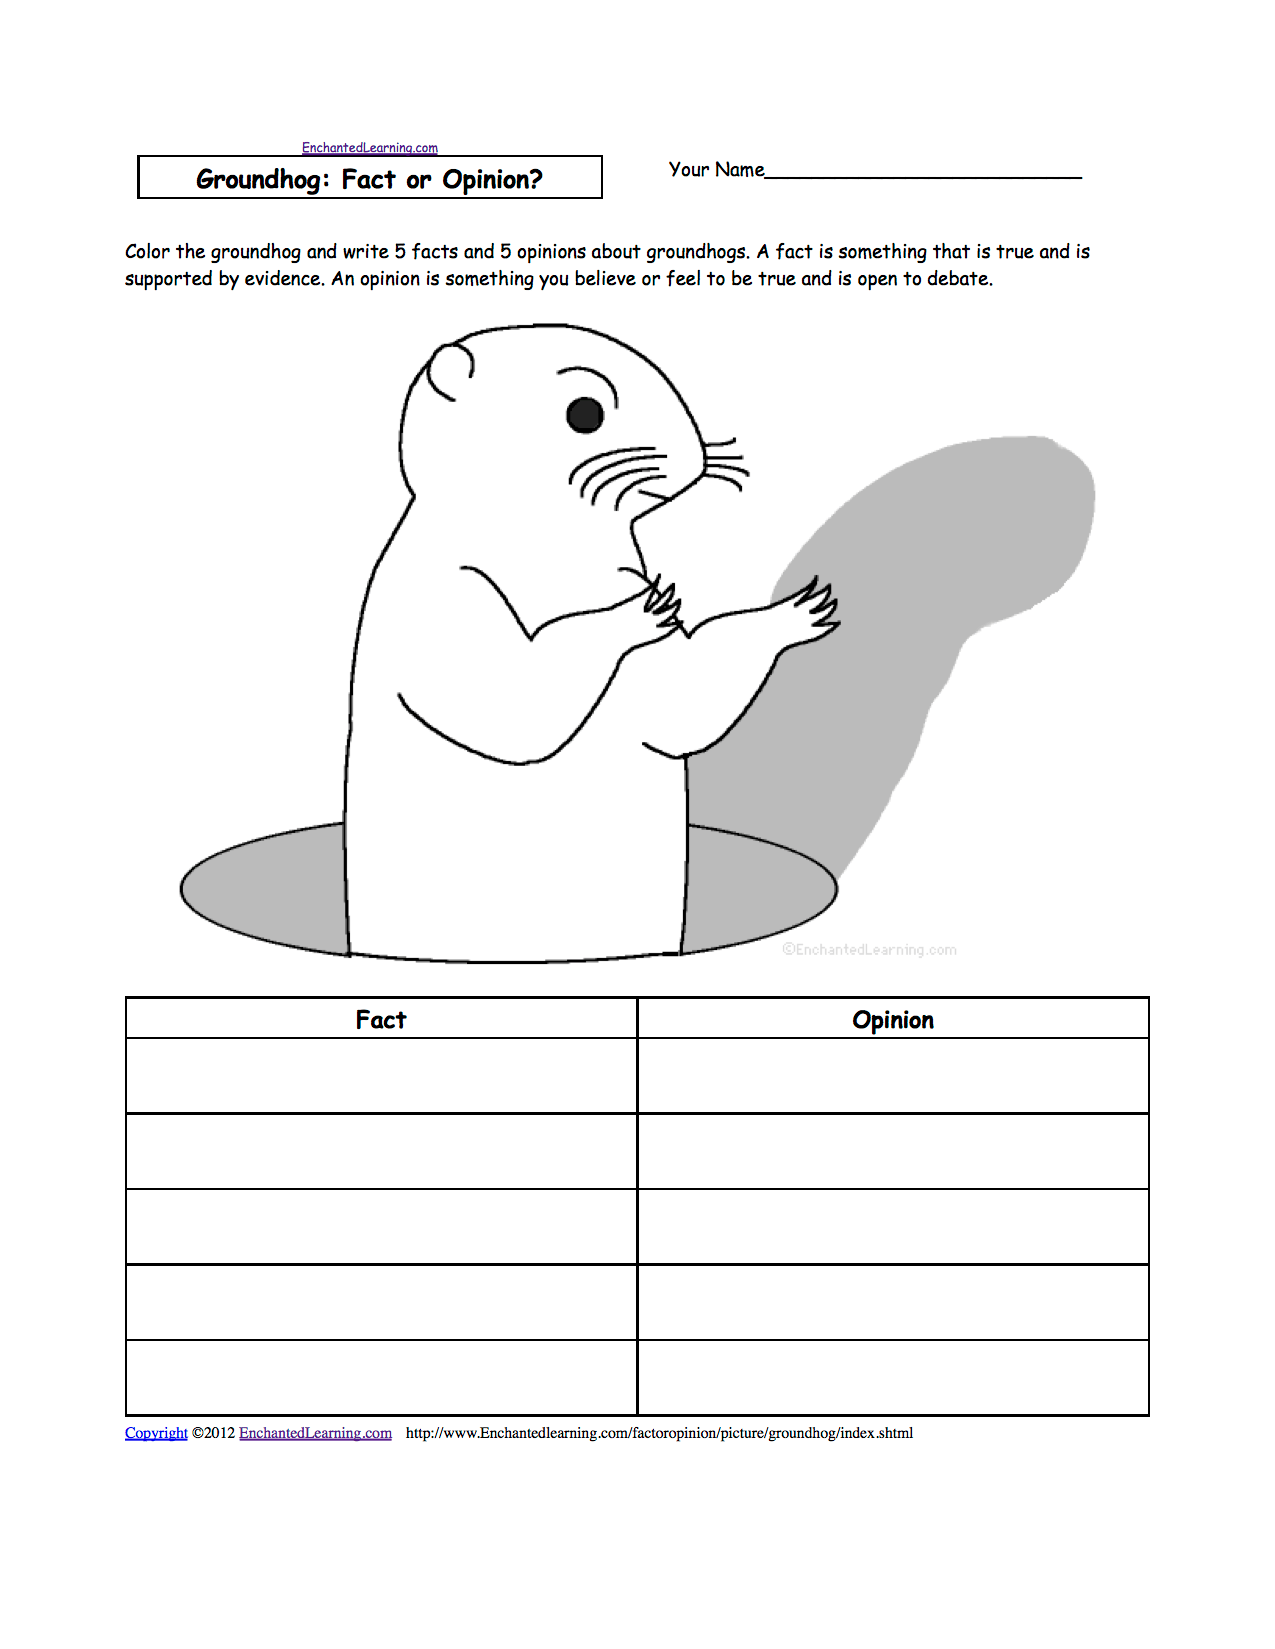 Groundhogs Groundhog Day Crafts Worksheets And Printable Books